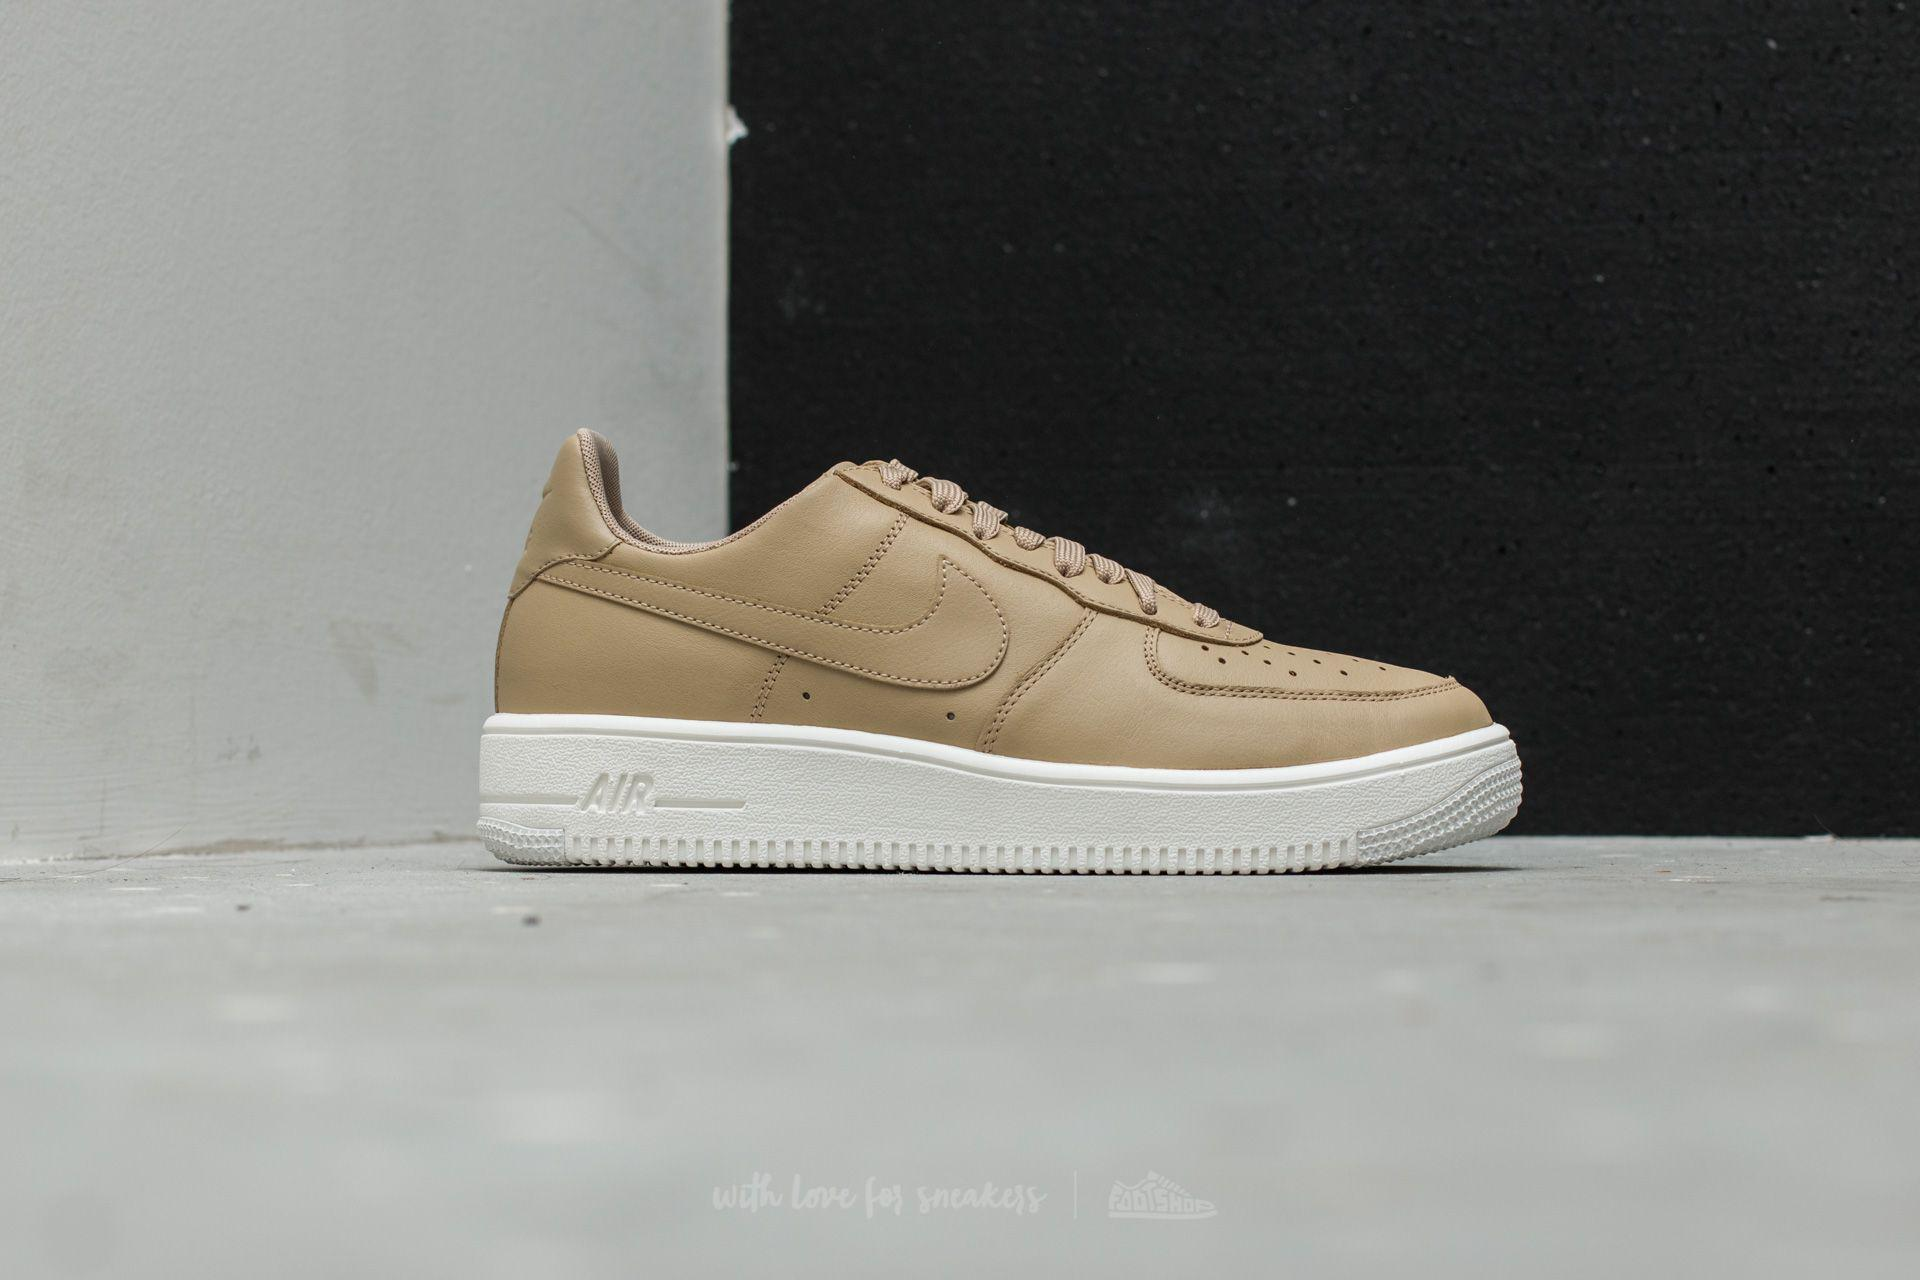 air force 1 khaki white